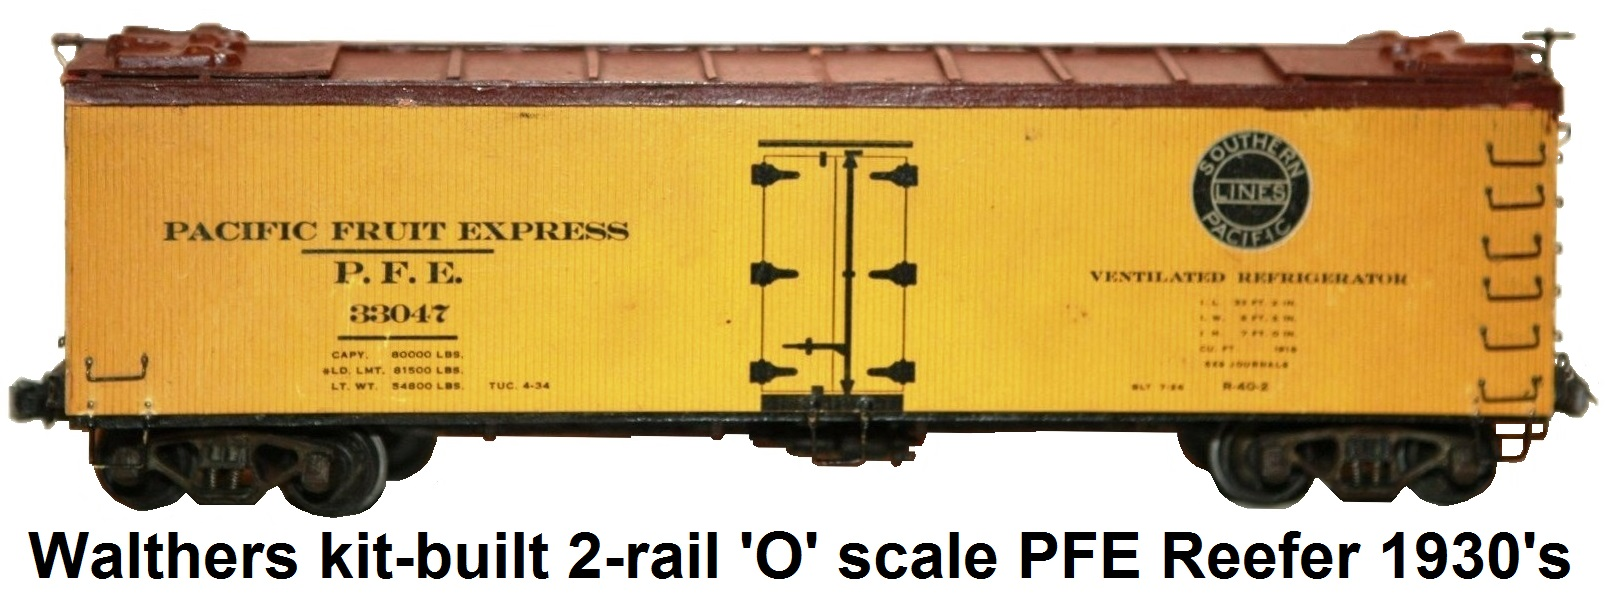 William K Walthers Trains Model Railroad Electronic Circuit Lists O Scale Pacific Fruit Express 33047 Reefer 1930s Era Kit Built